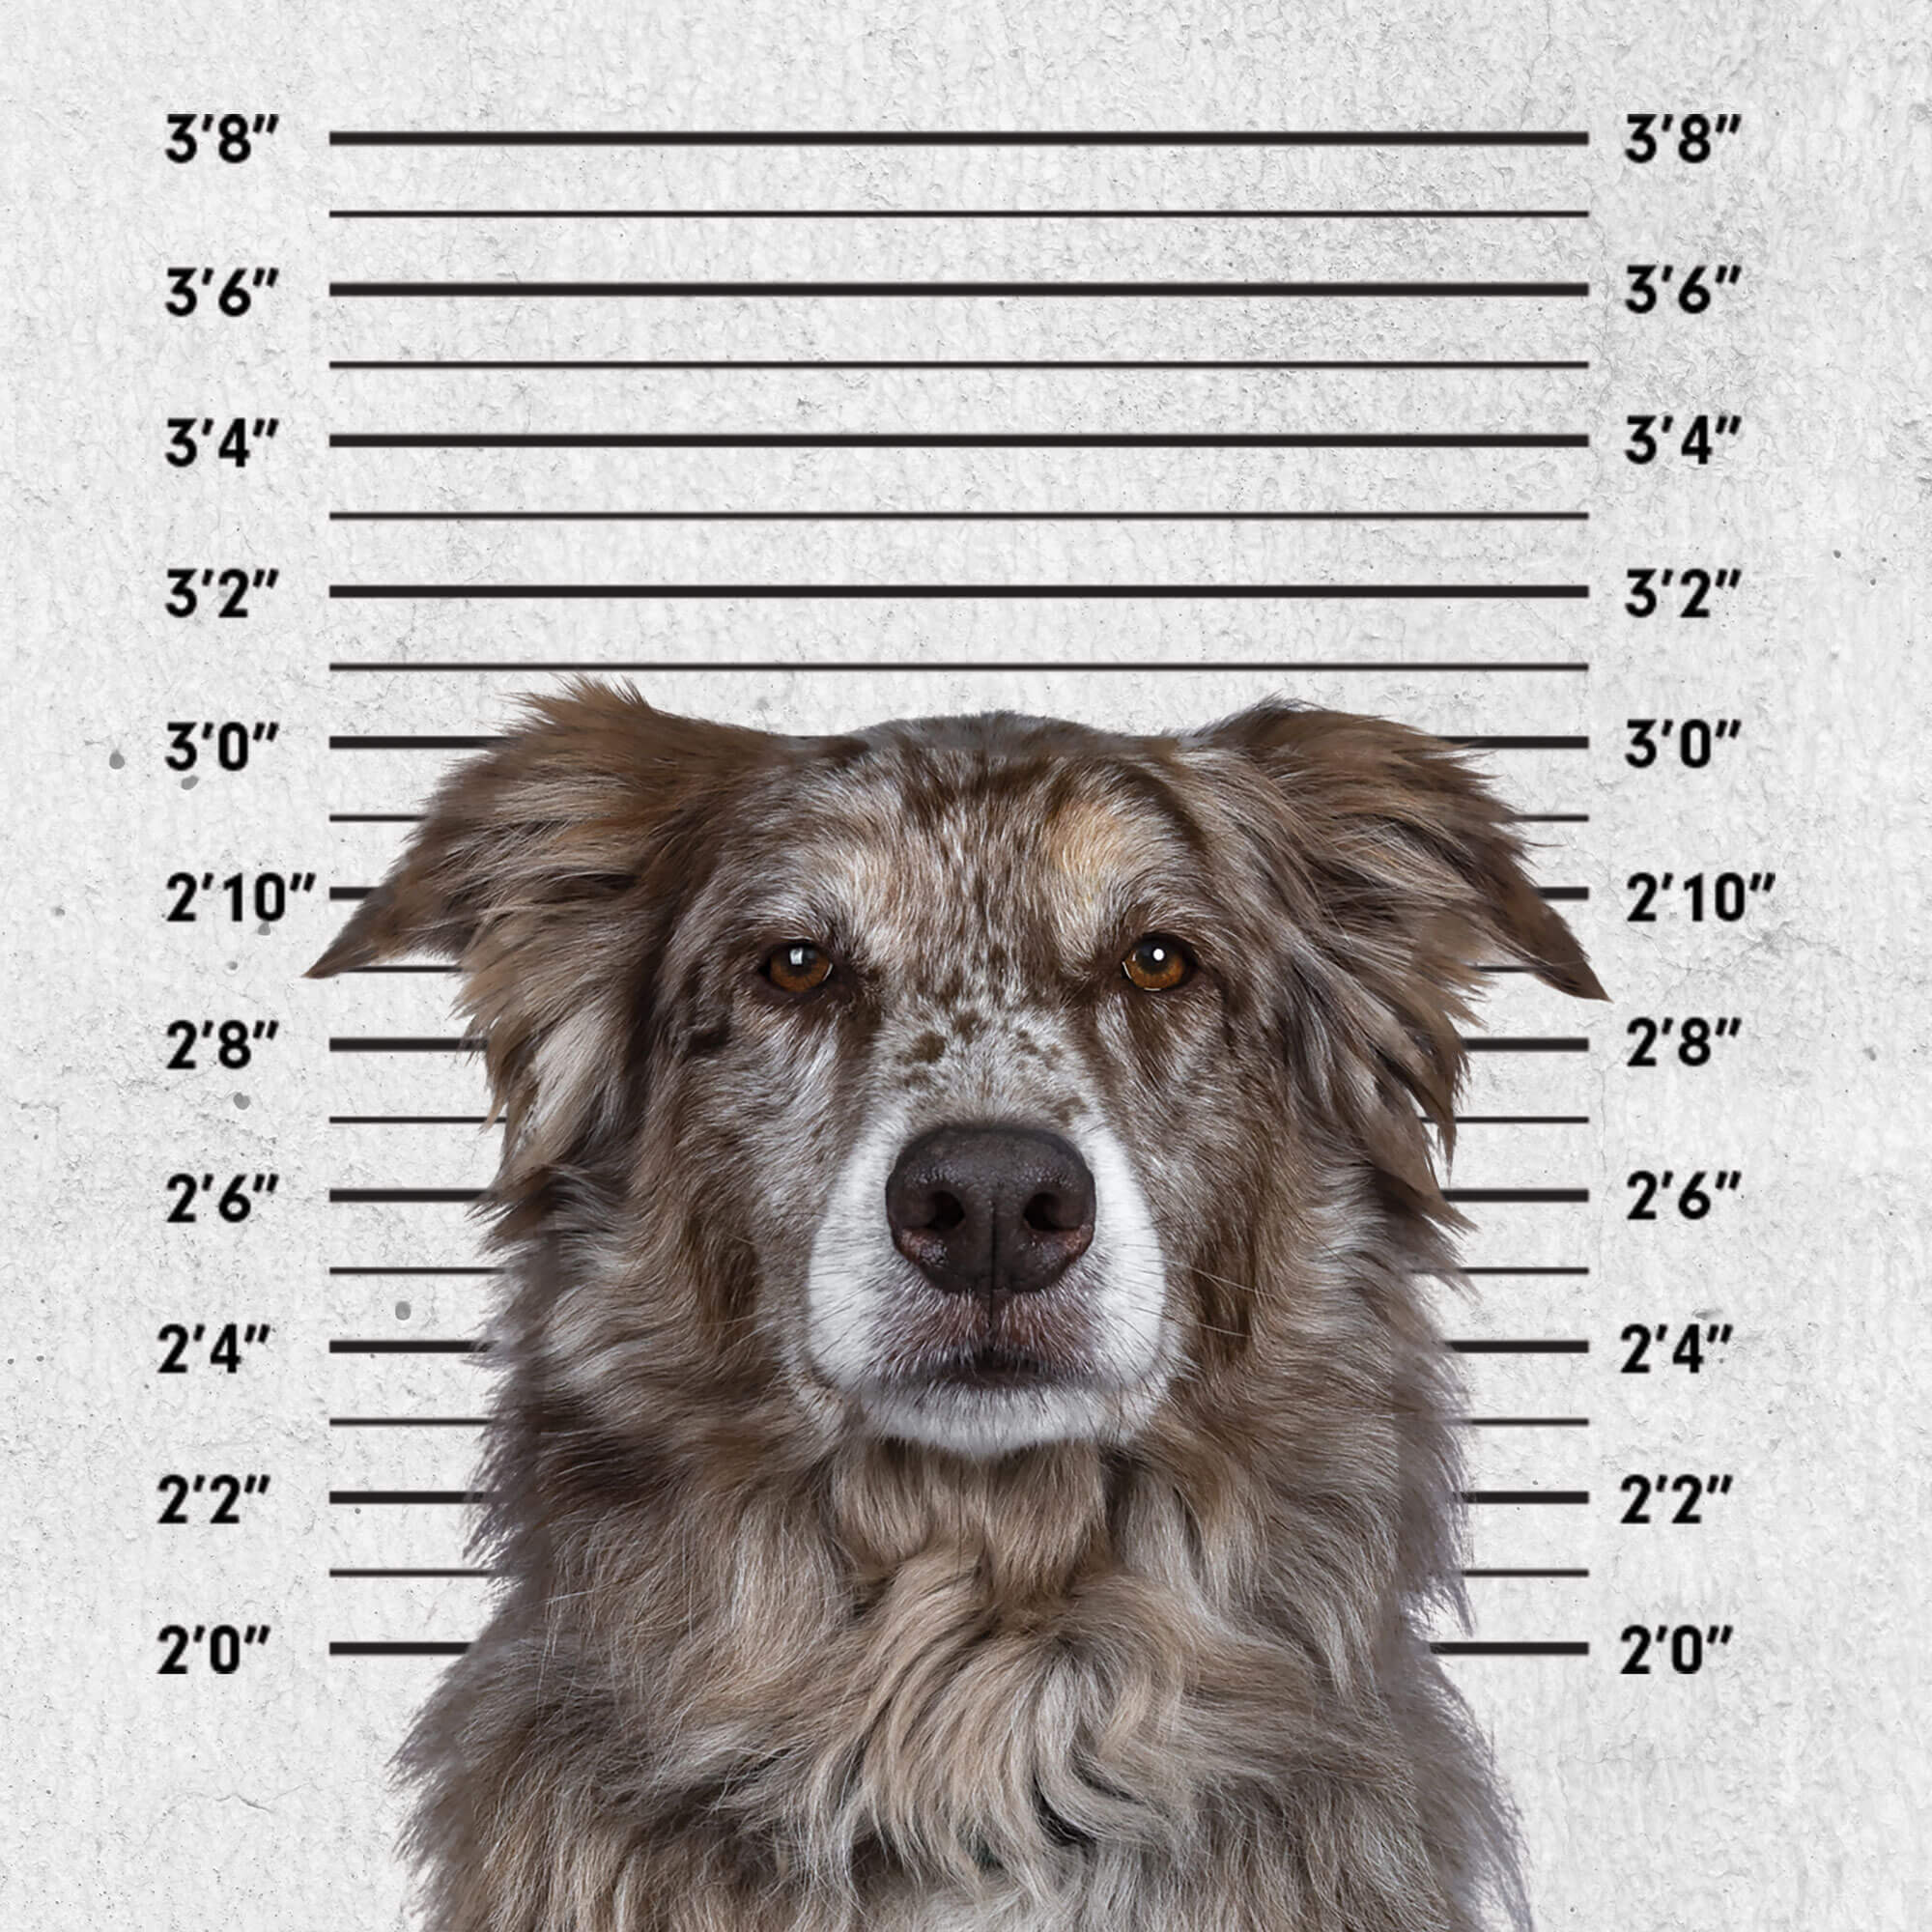 Mugshot of dog in front of a prison height chart